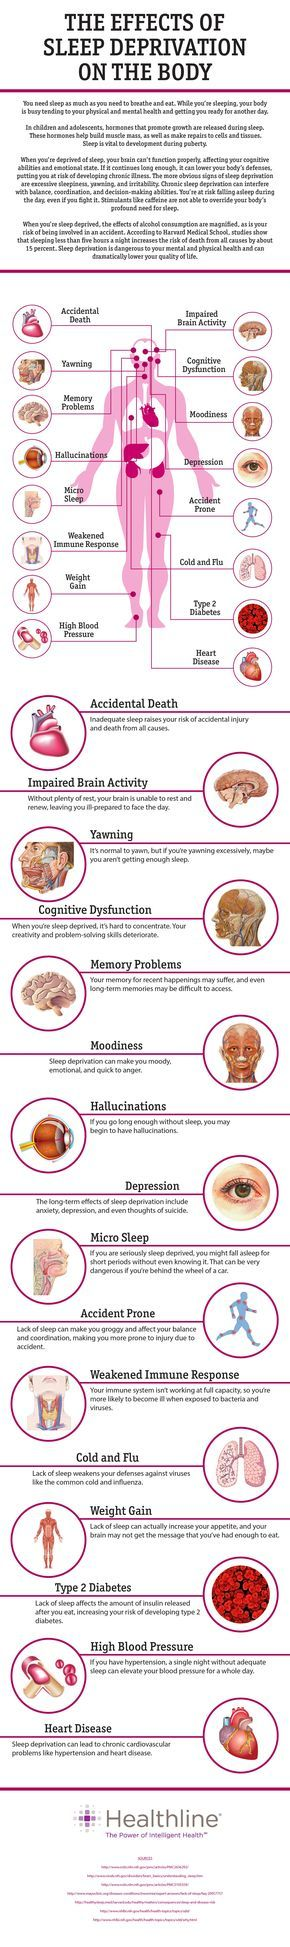 The Effects of Sleep Deprivation on the Body=> http://www.healthline.com/health/sleep-deprivation/effects-on-body #sleep #healthysleep